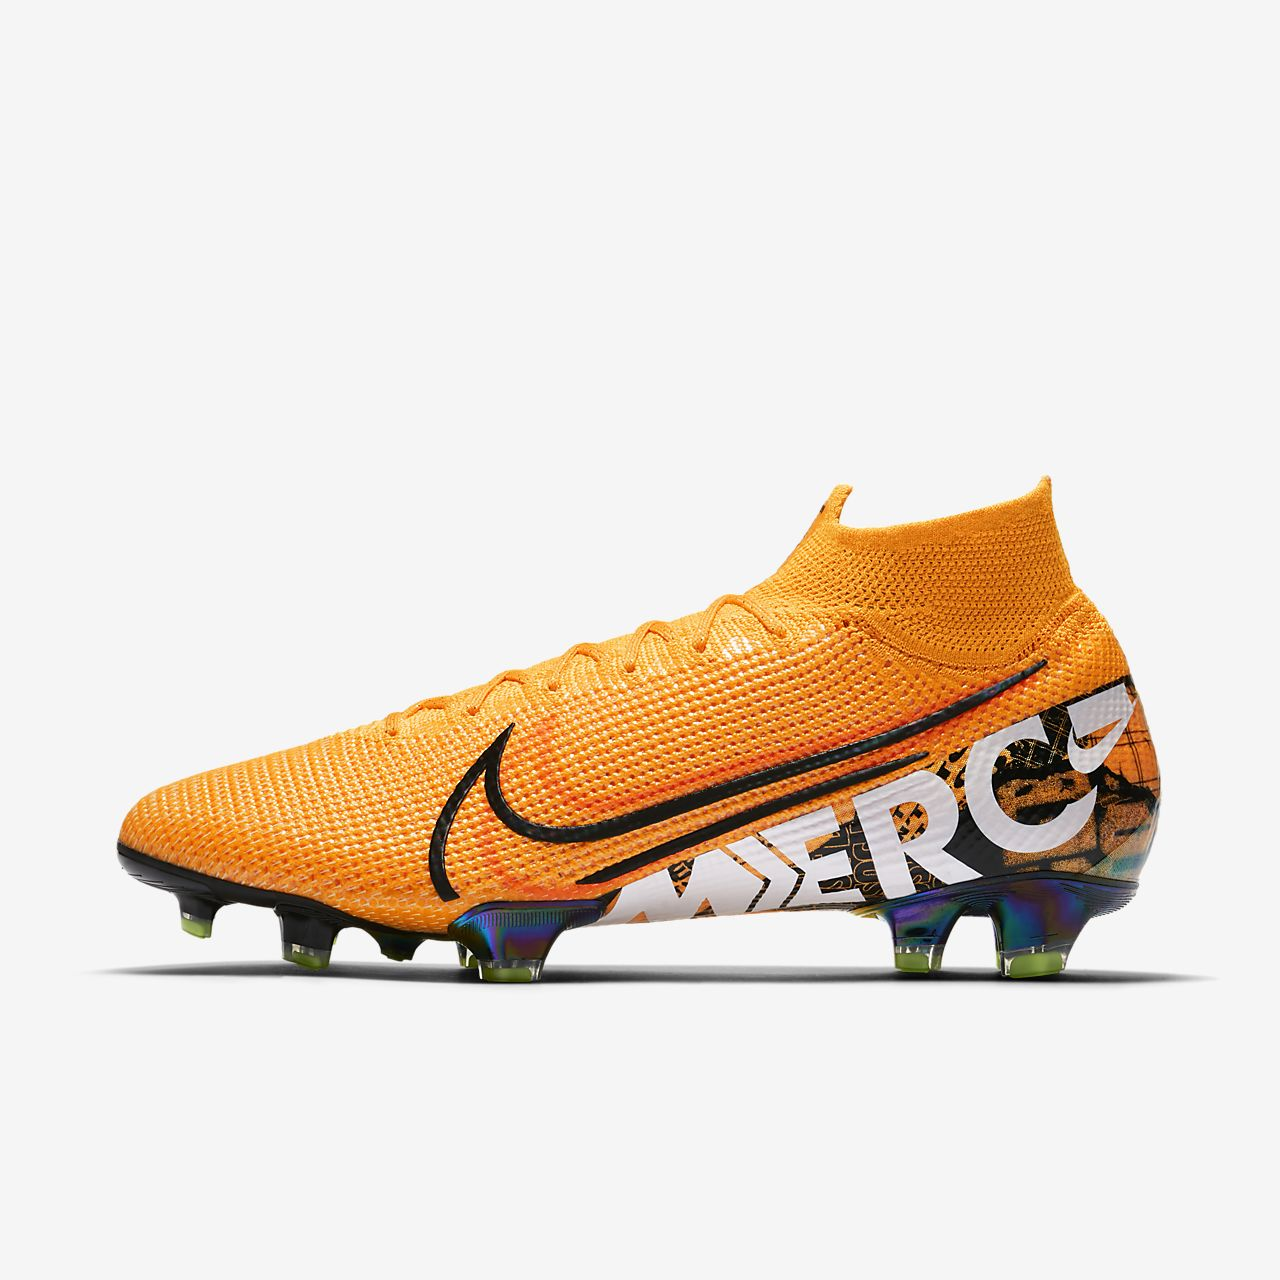 uk availability 1ba71 84824 ... Nike Mercurial Superfly 7 Elite SE FG Firm-Ground Soccer Cleat